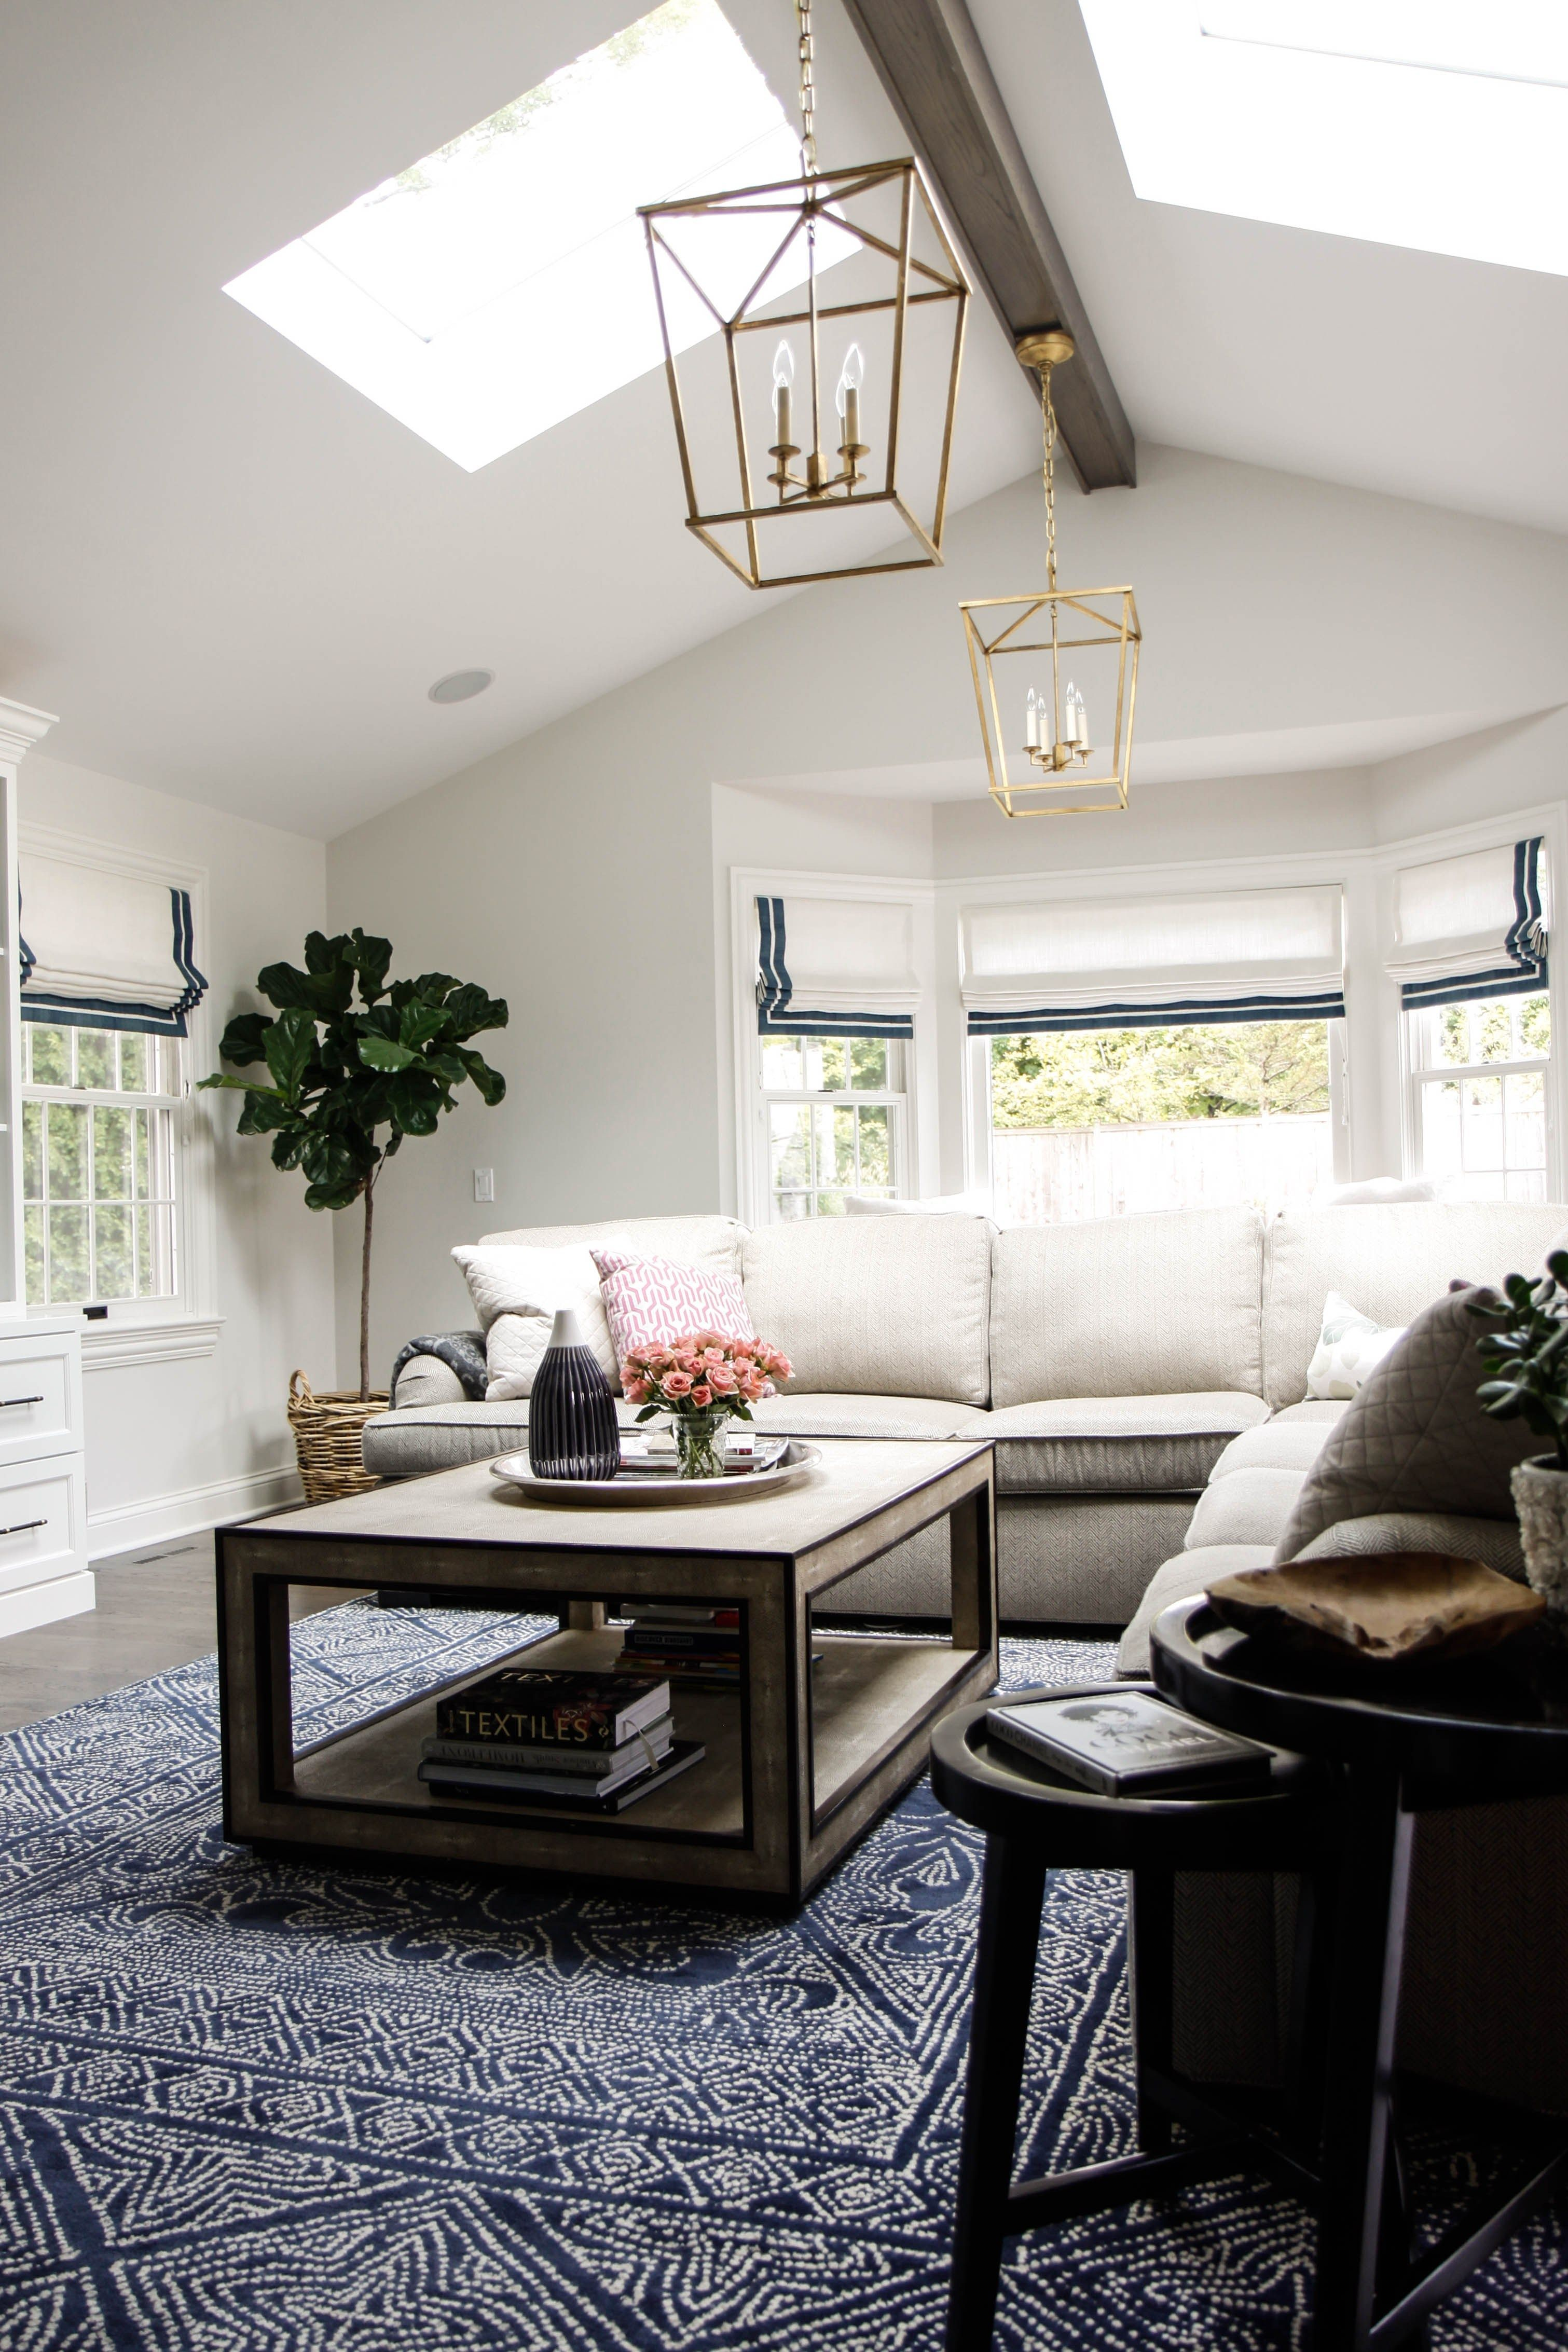 Pin on living room remodel ideas budget